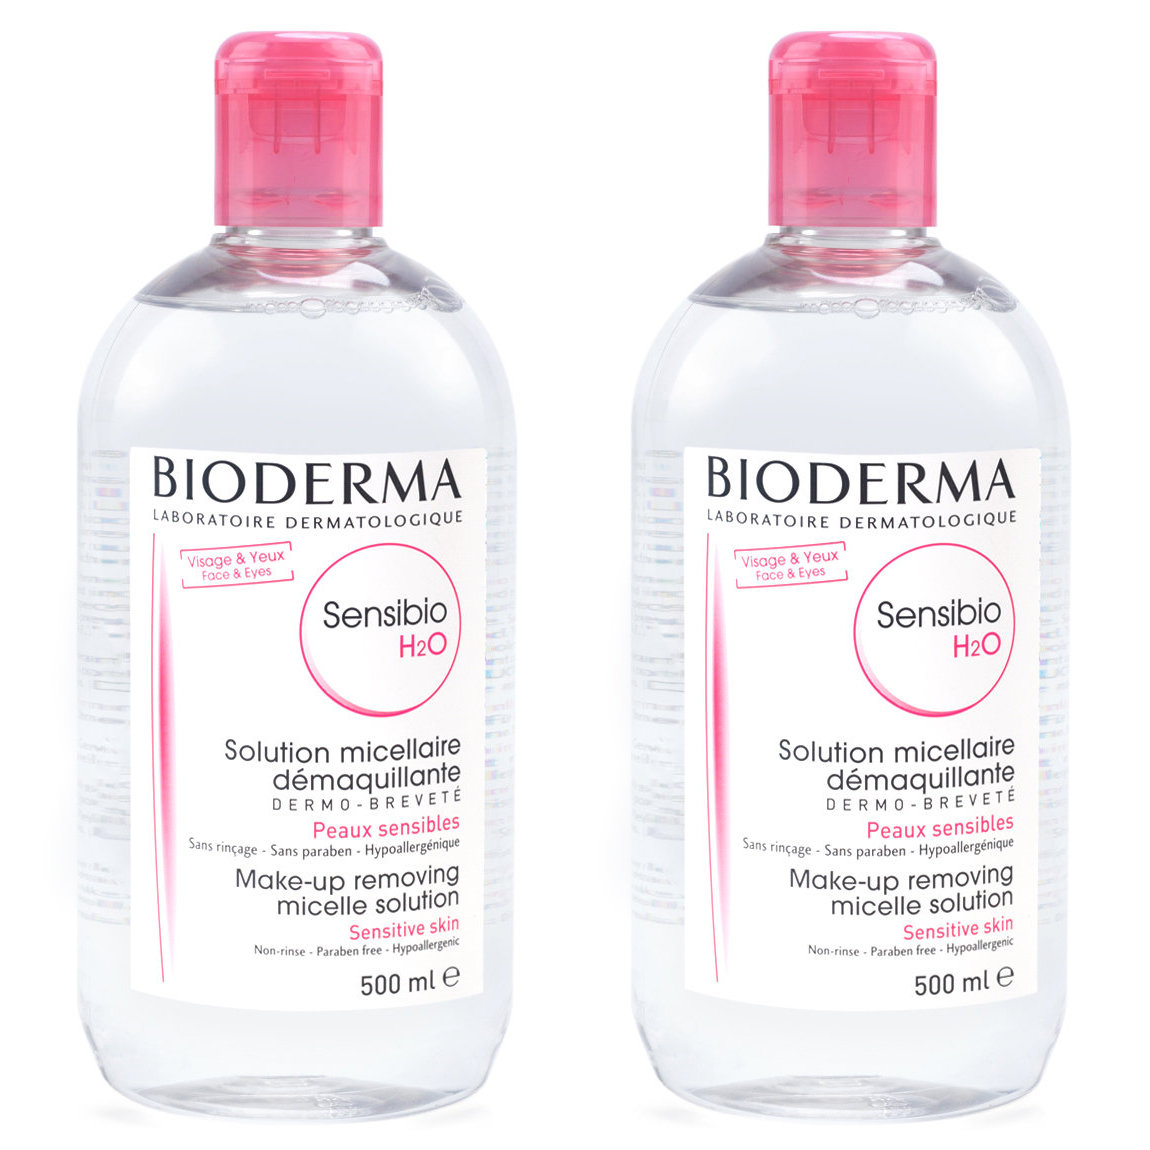 Buy two 500-ml Bioderma Sensibio H2O for $19.90 (Value of $29.80)